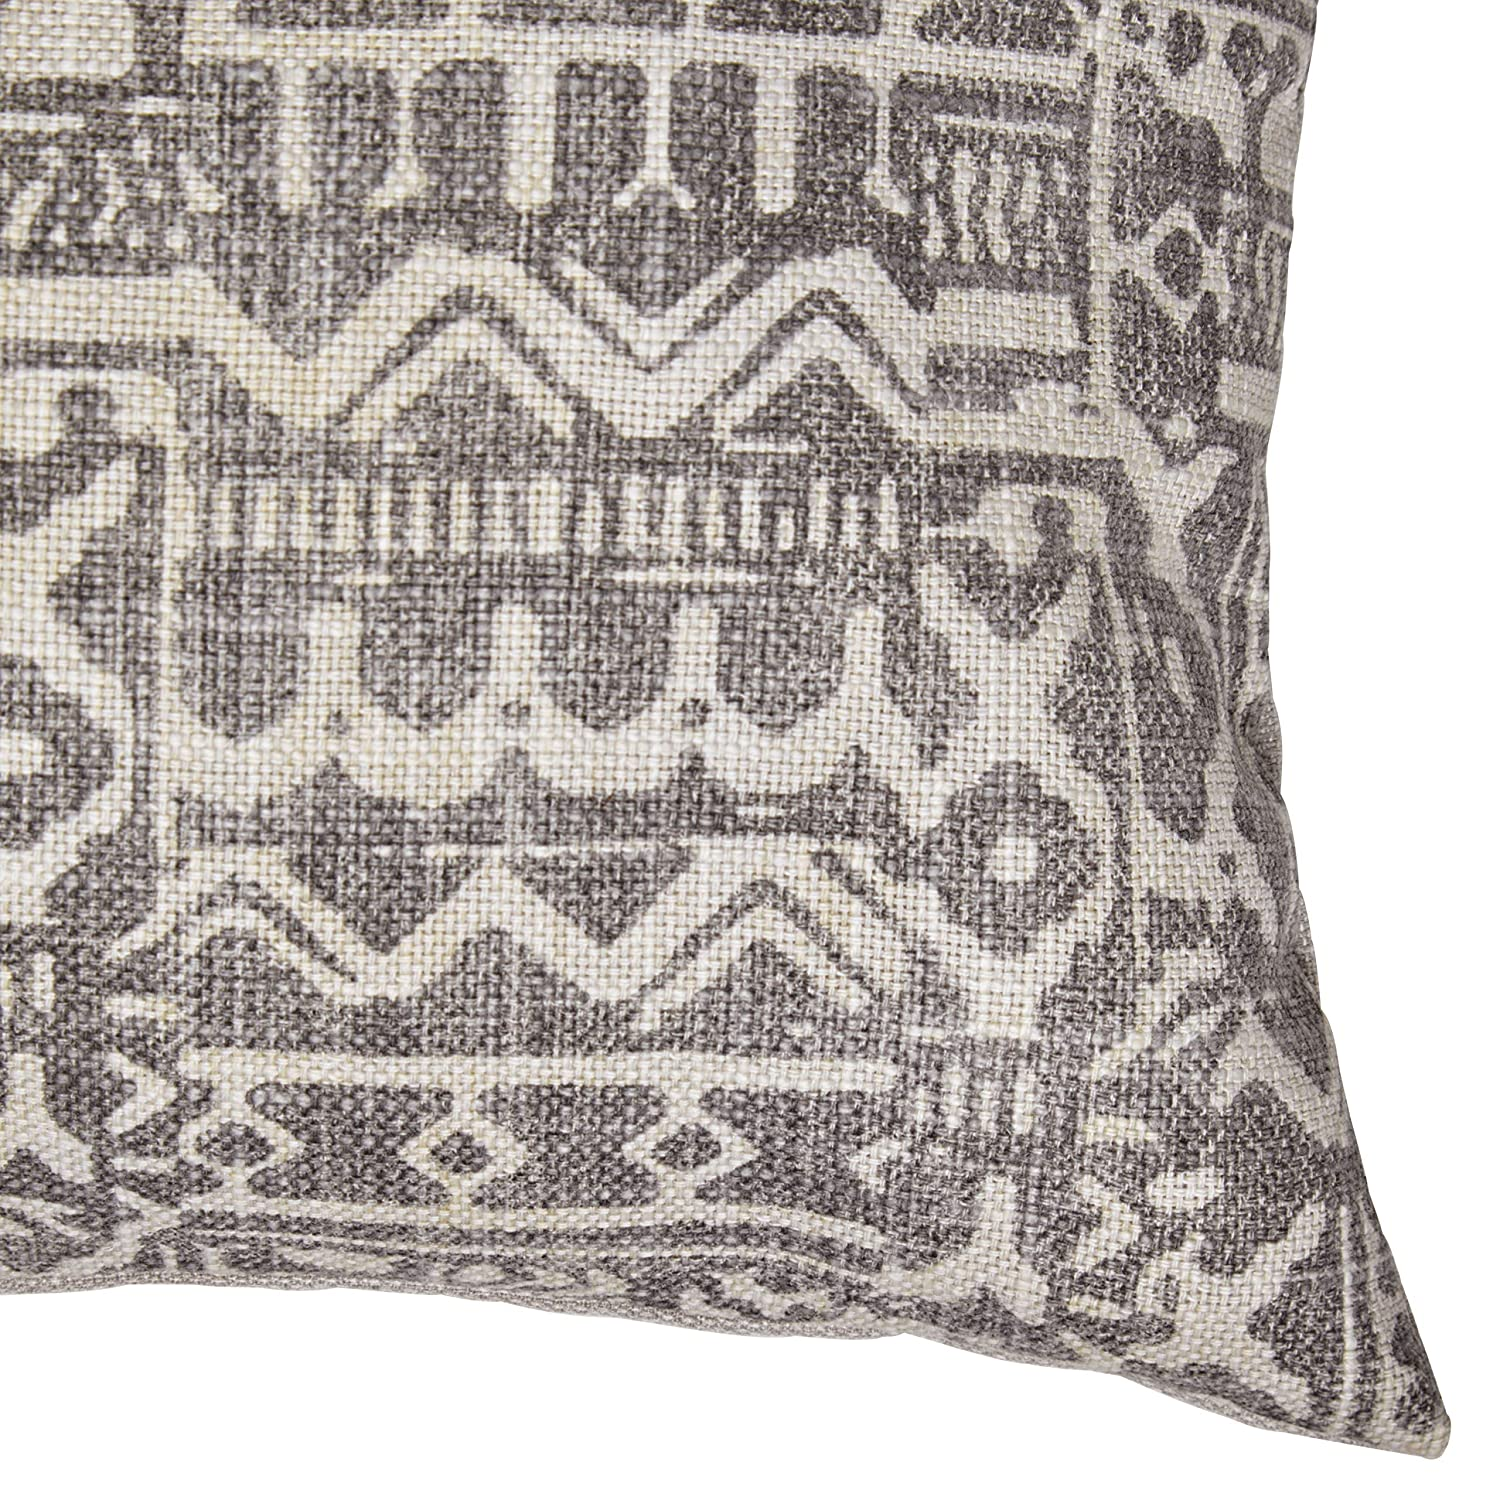 Stone Beam Casual Global Throw Pillow – 12 x 24 Inch, Charcoal